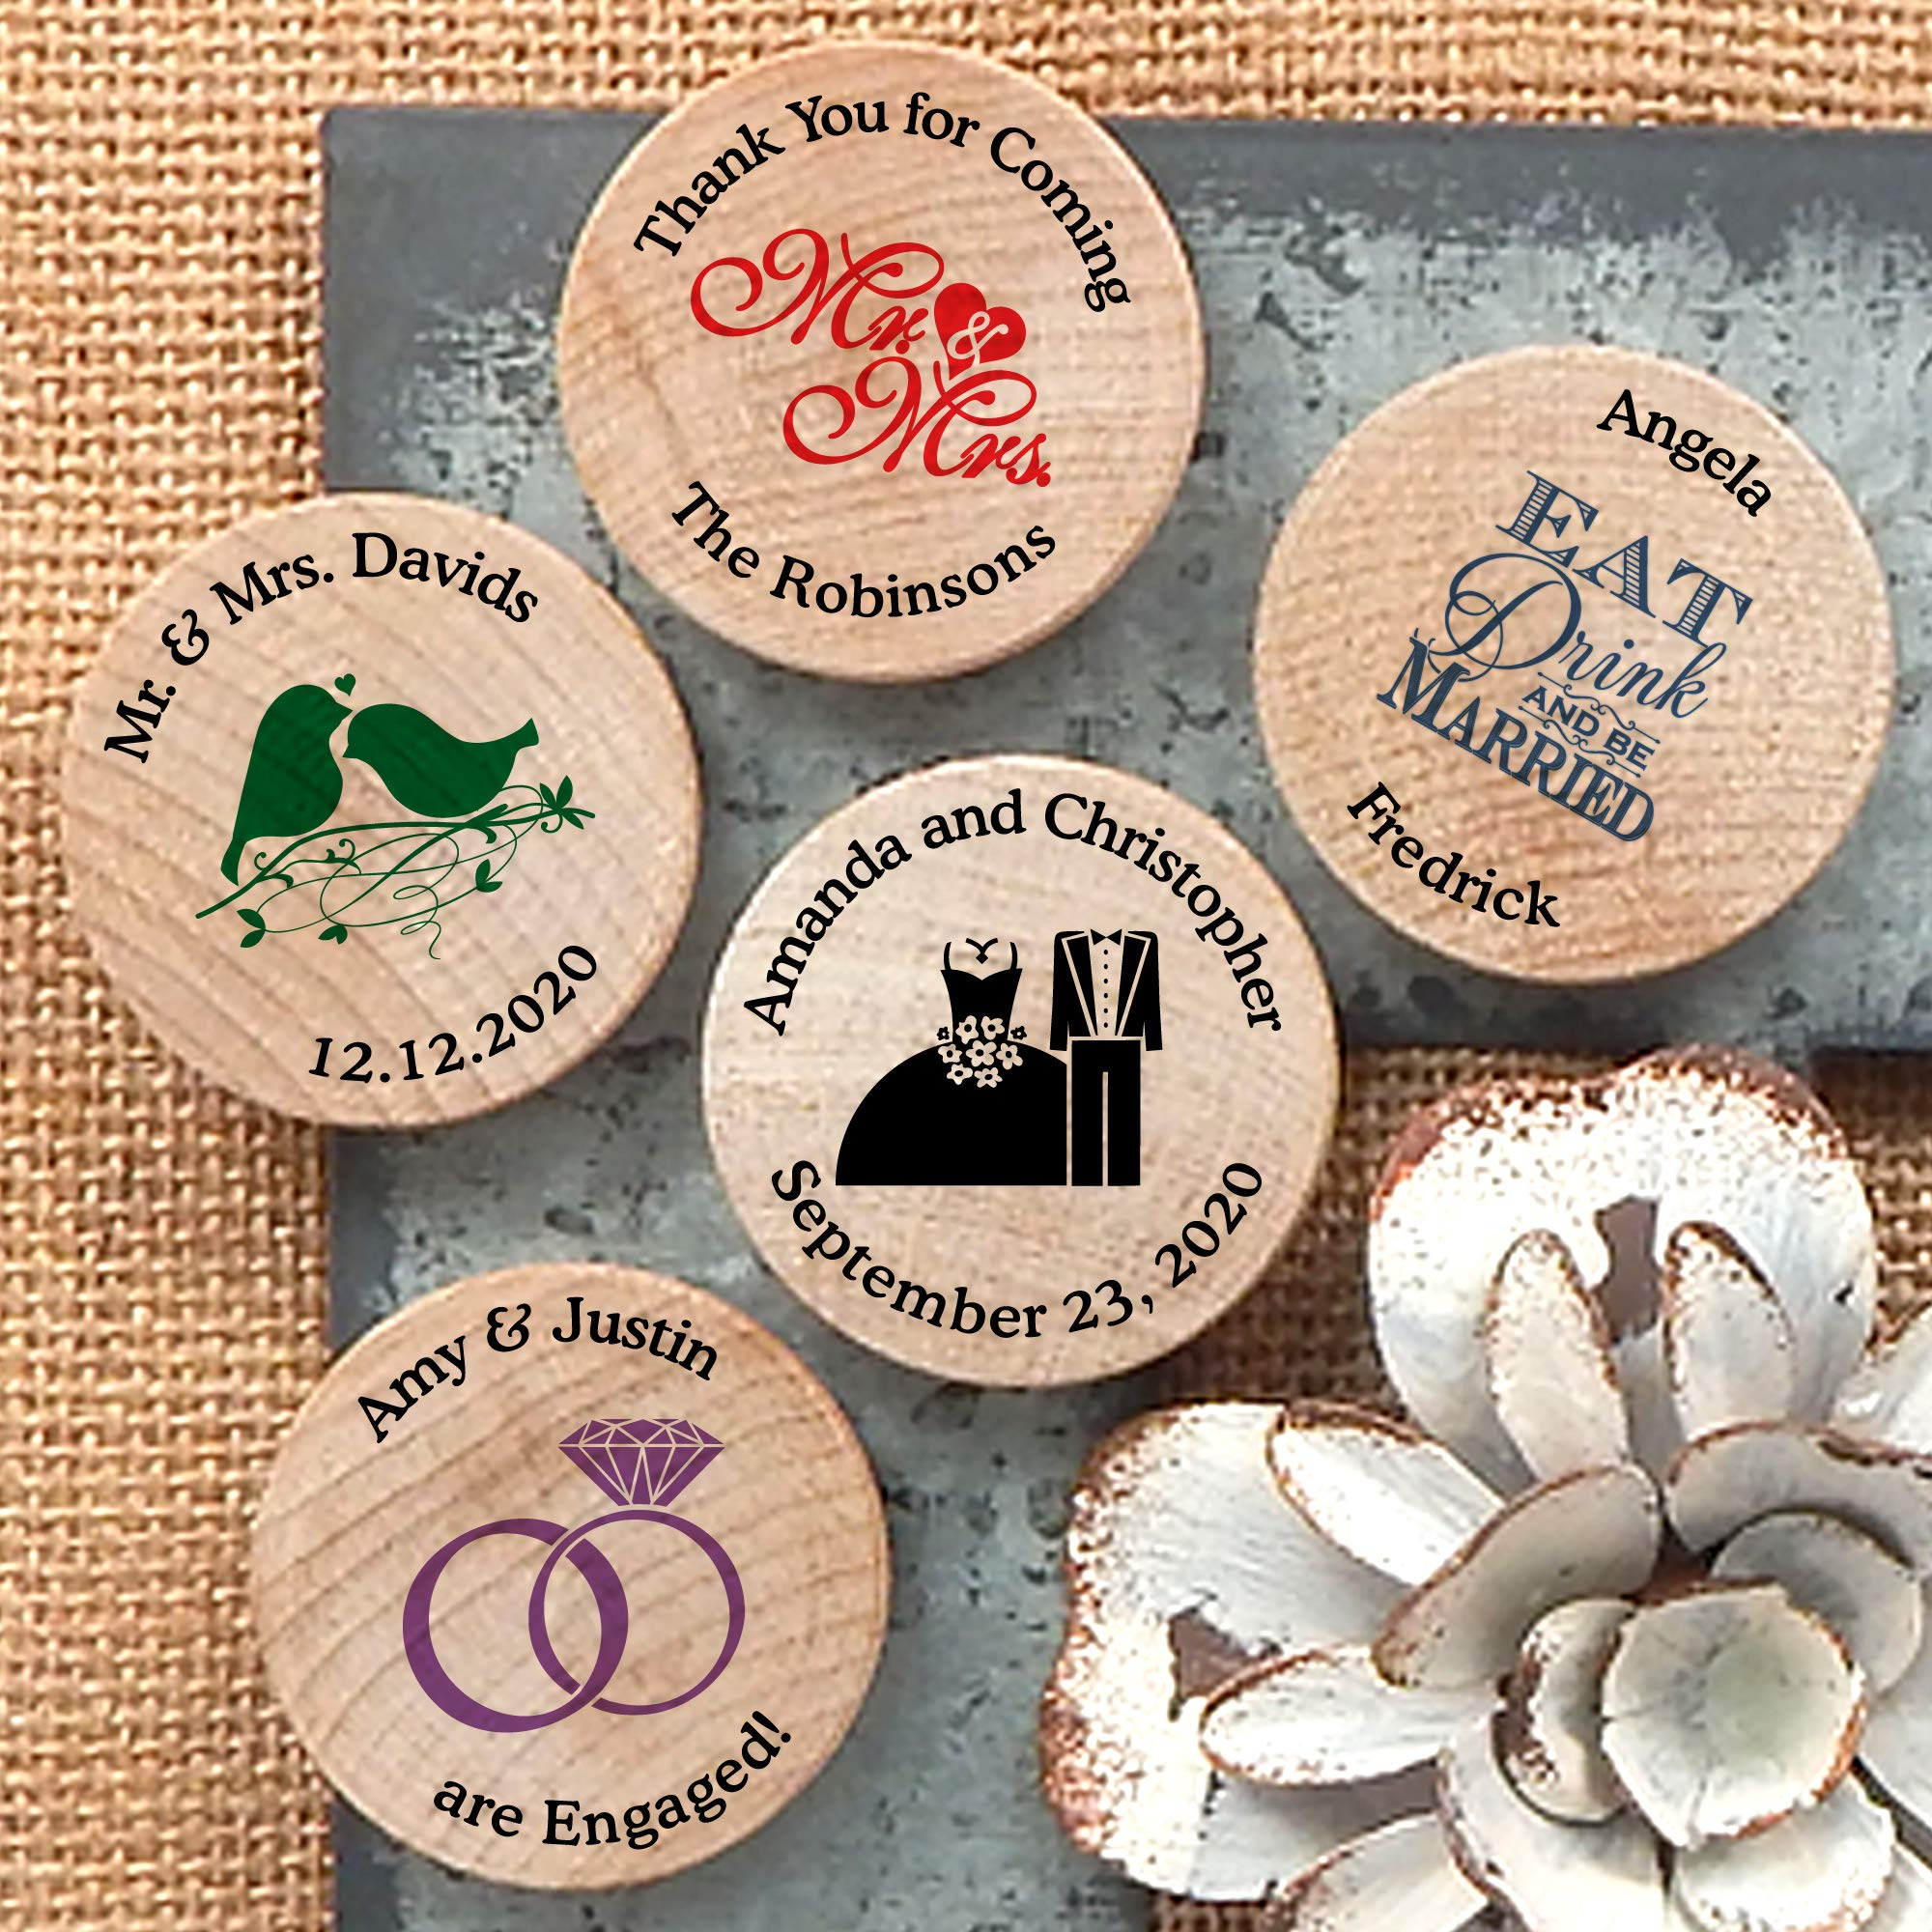 Personalized Wooden Wedding Magnets, Personalized Refrigerator Magnets, Save The Date Magnets (Set of 50) by Ducky Days